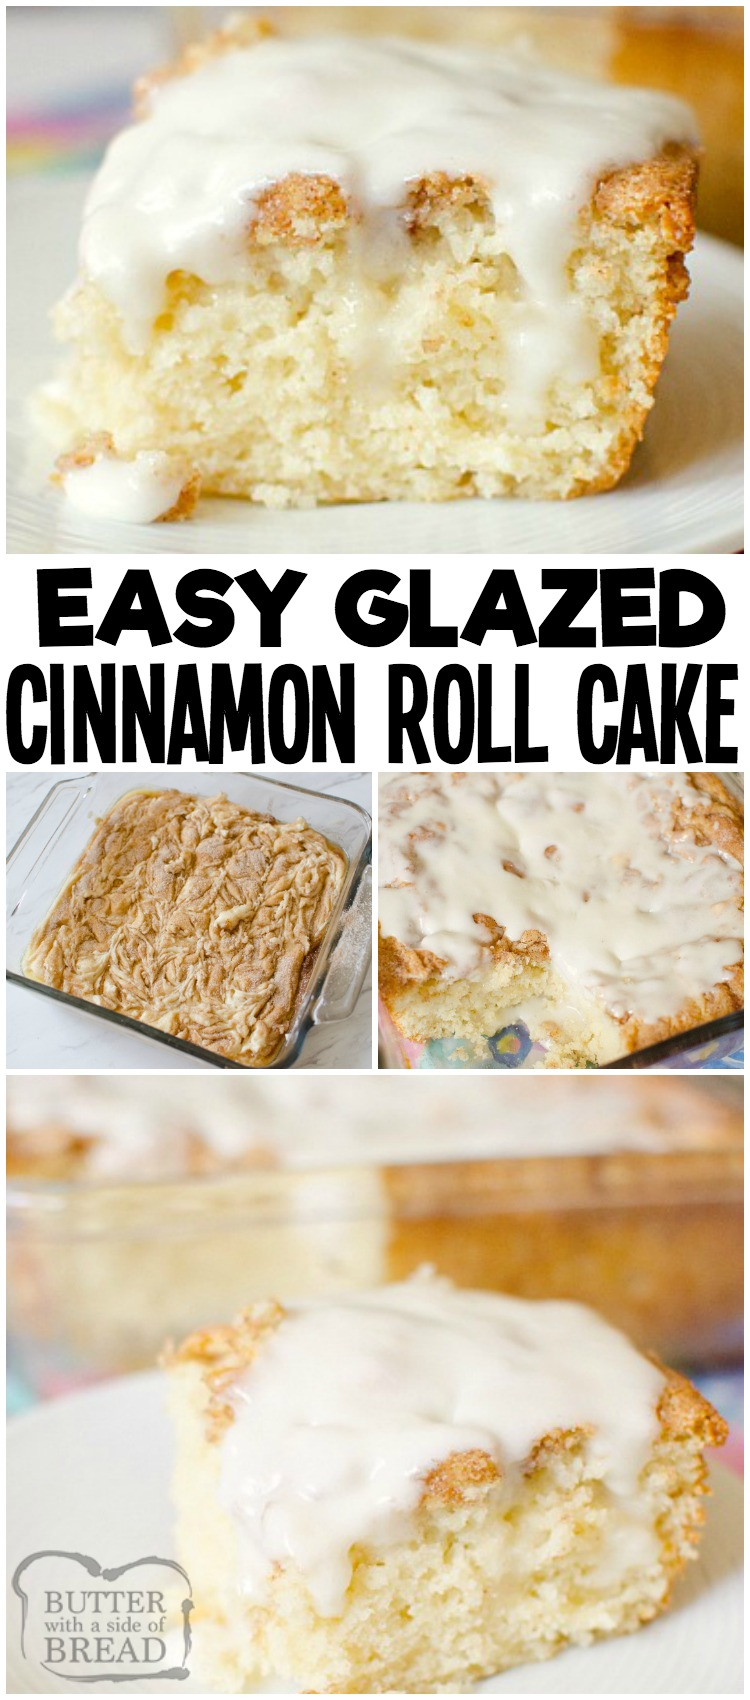 Cinnamon Roll Cake gives you all the classic cinnamon roll flavors with minimal work and time! Everyone loves the fluffy texture, cinnamon and sugar swirl top and the sweet vanilla glaze in this easy breakfast cake recipe. A new favorite that the whole family will love!